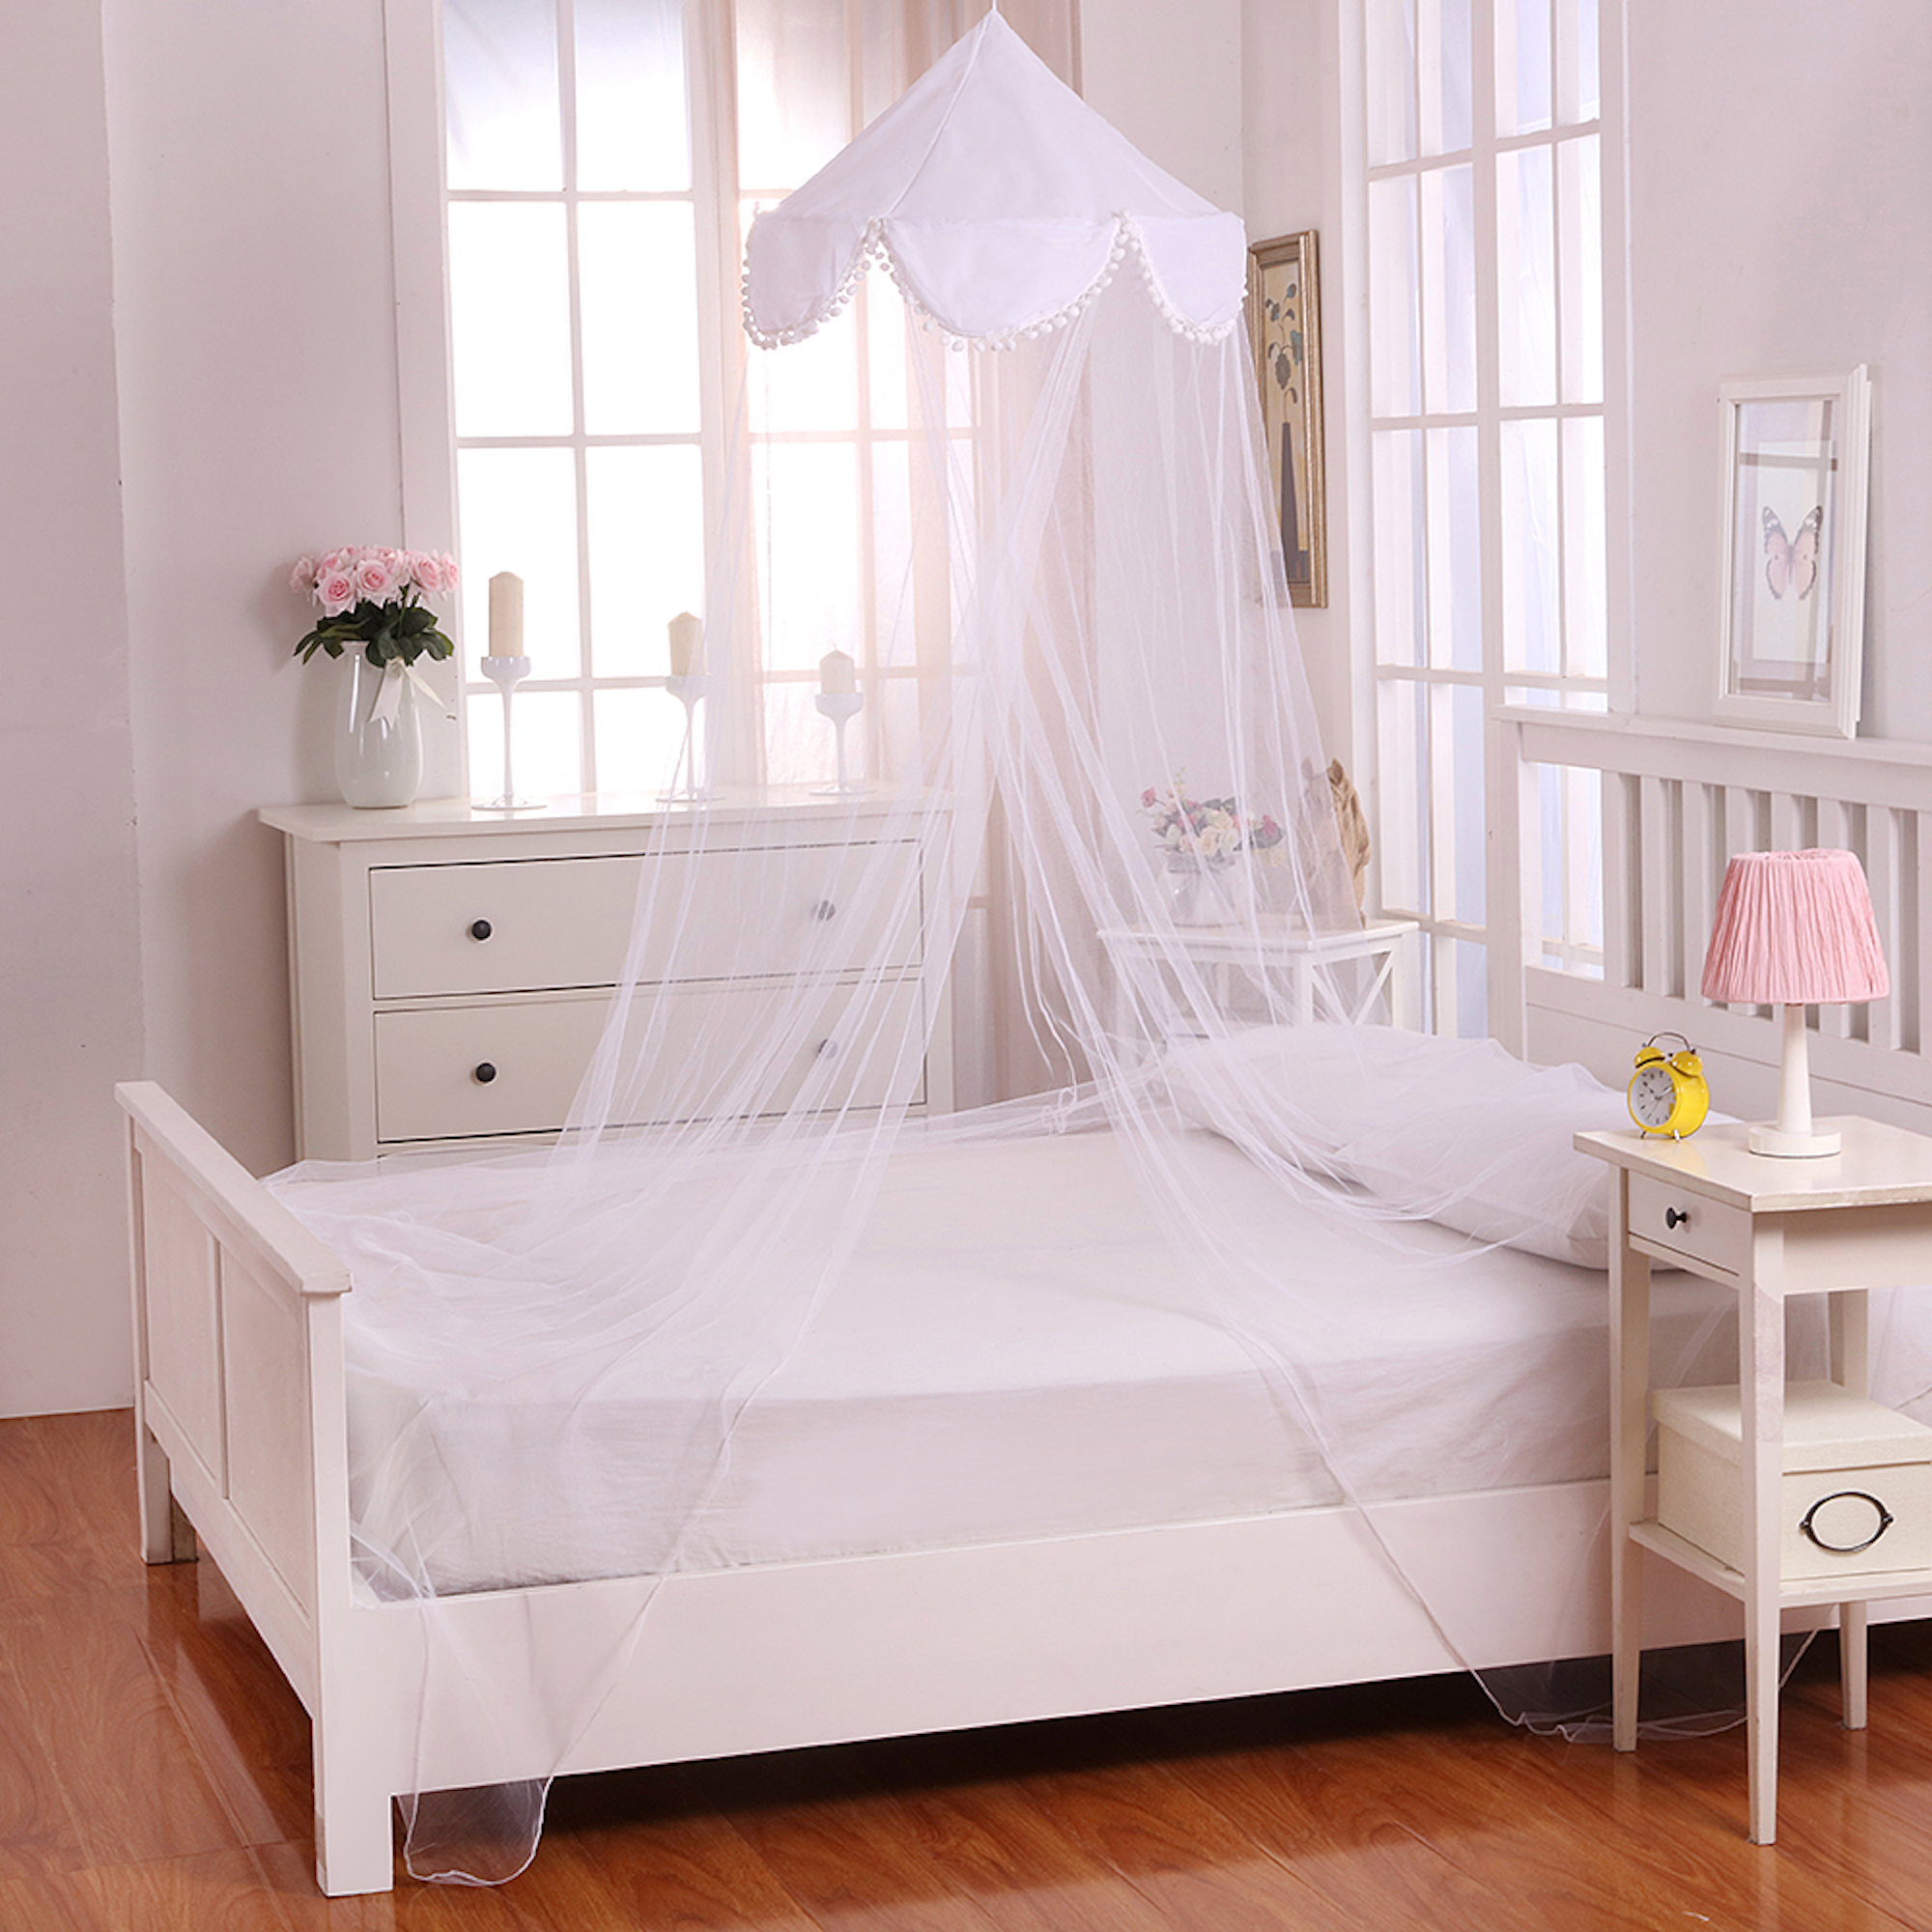 Casablanca Pom Collapsible Hoop Sheer Bed Canopy White